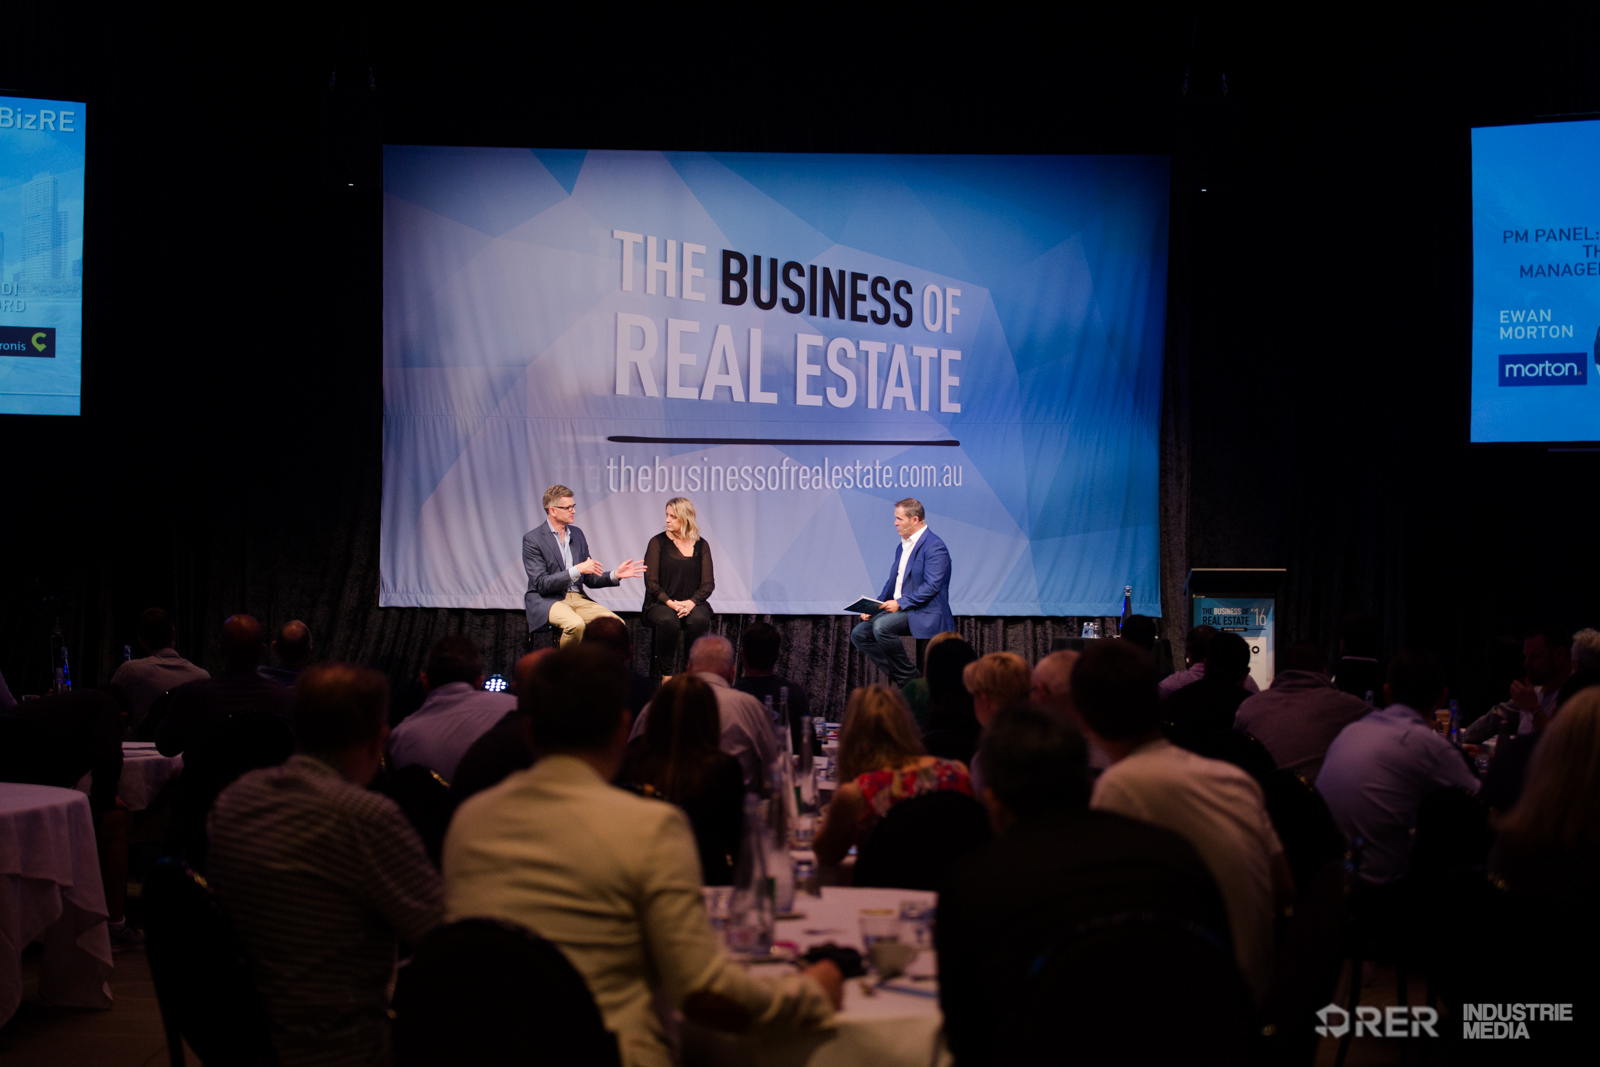 https://www.thebusinessofrealestate.com.au/wp-content/uploads/2016/09/RER_BUSINESS_OF_REAL_ESTATE_DAY_2-74.jpg